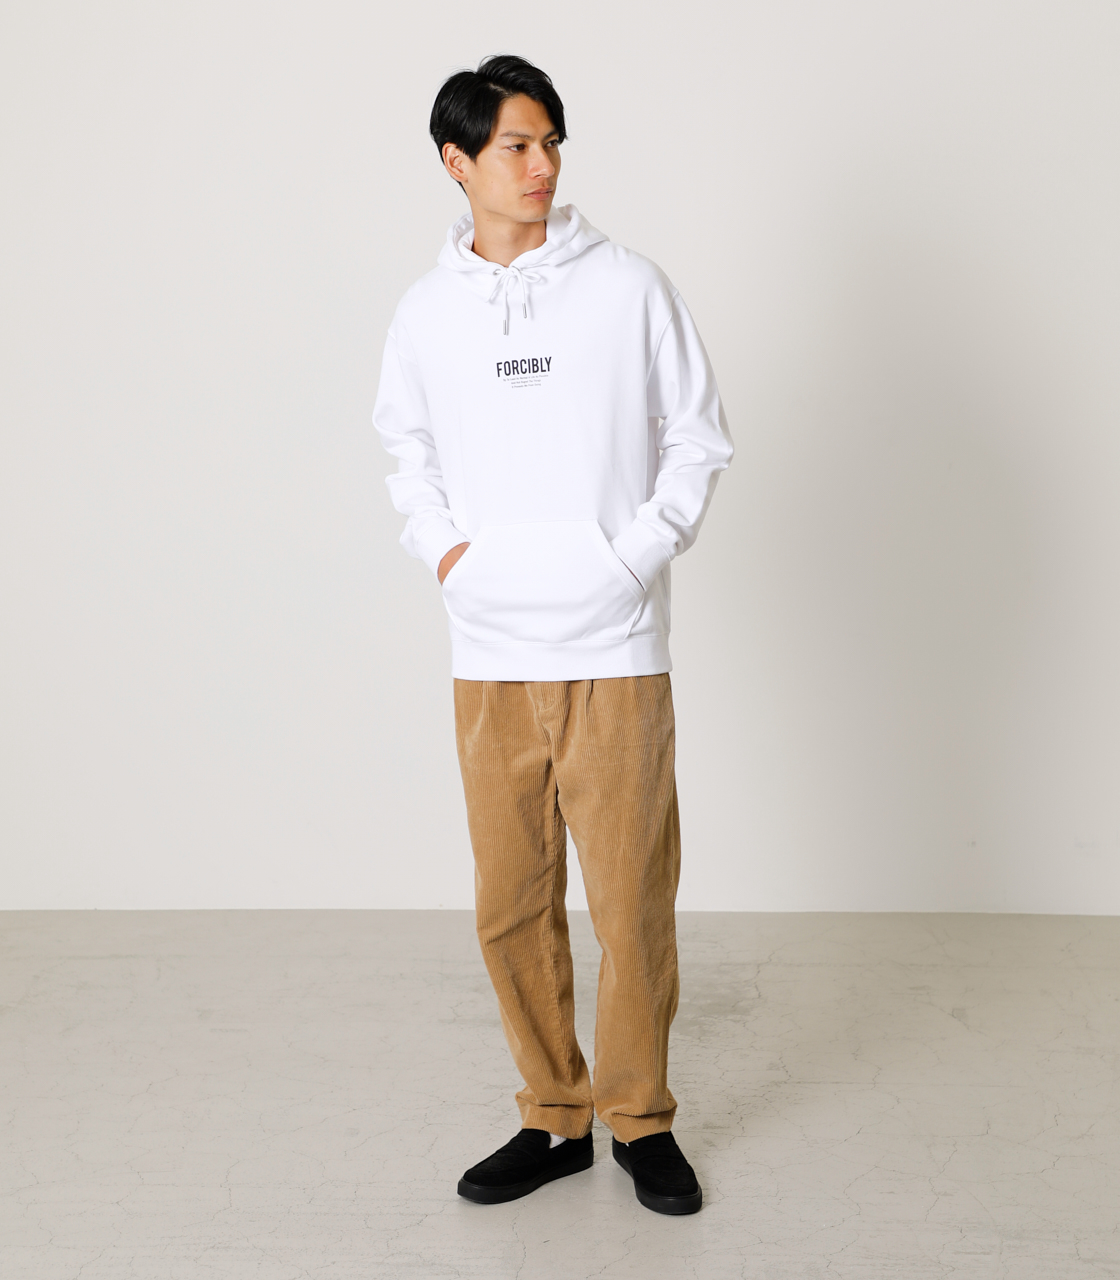 FORCIBLY HOODIE/フォーシブリーフーディ 詳細画像 WHT 3